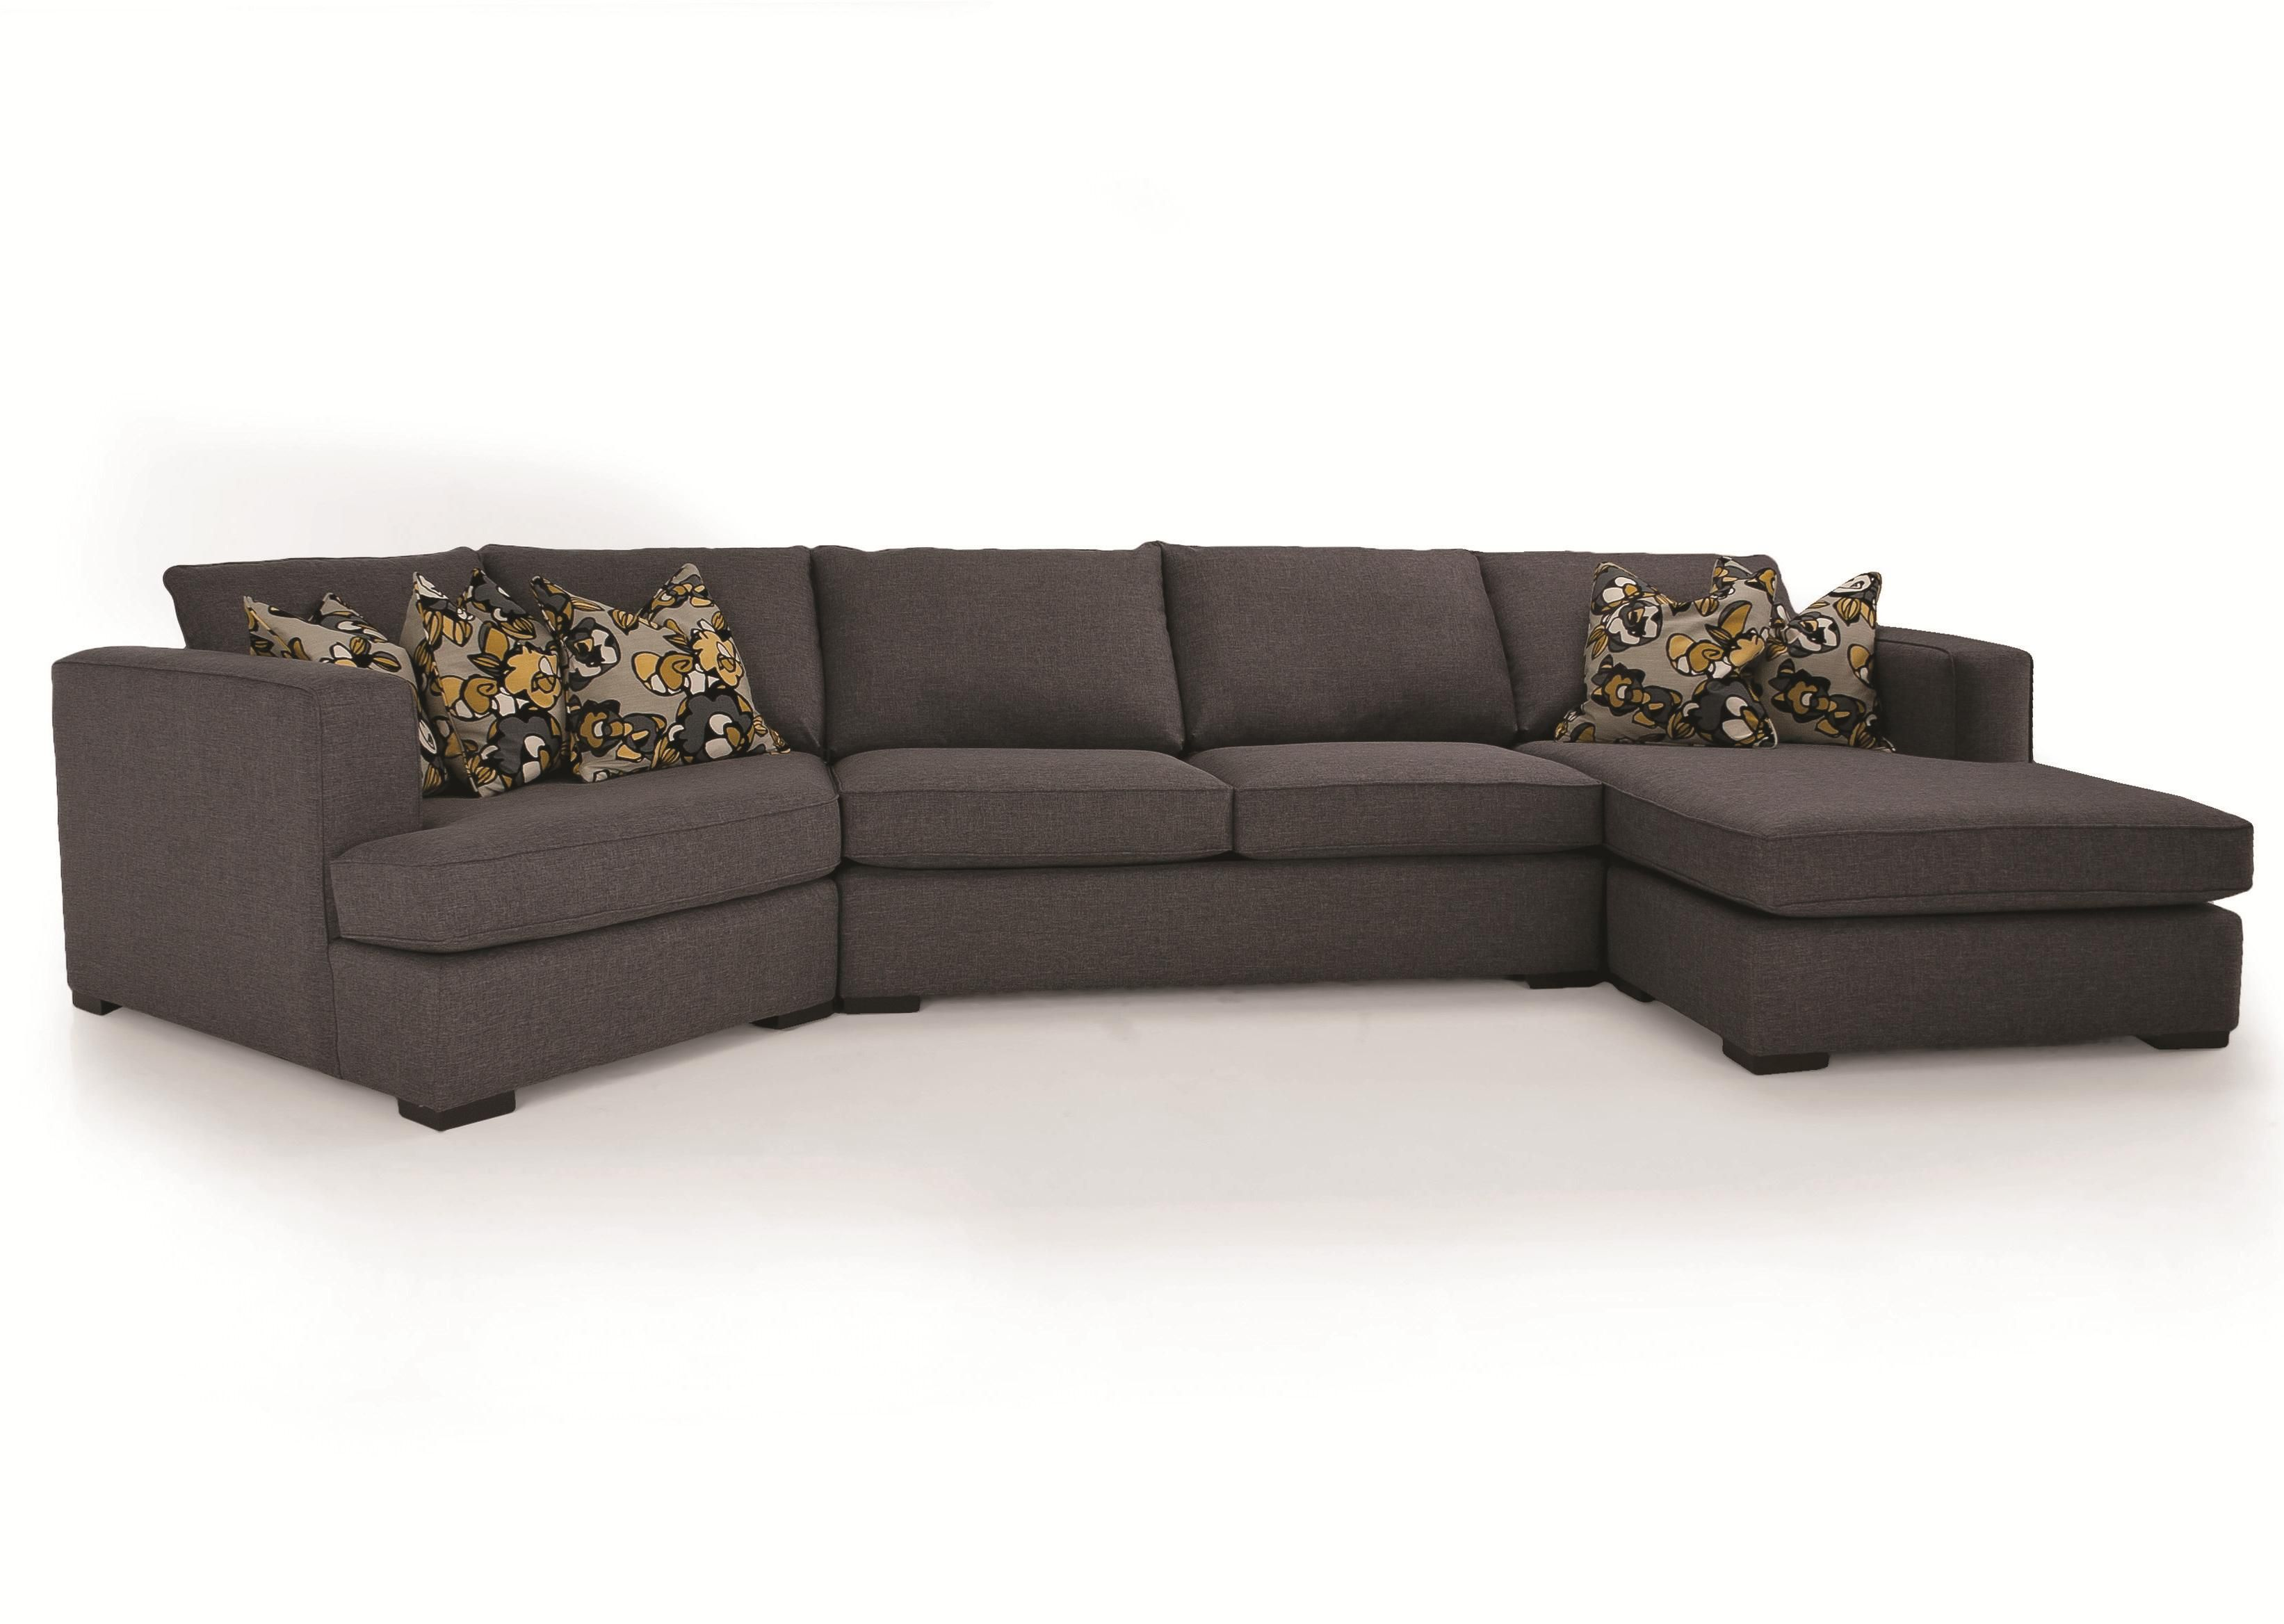 sofa with cuddler and chaise cotton twill fabric decor rest 2900 3 piece contemporary sectional lhf